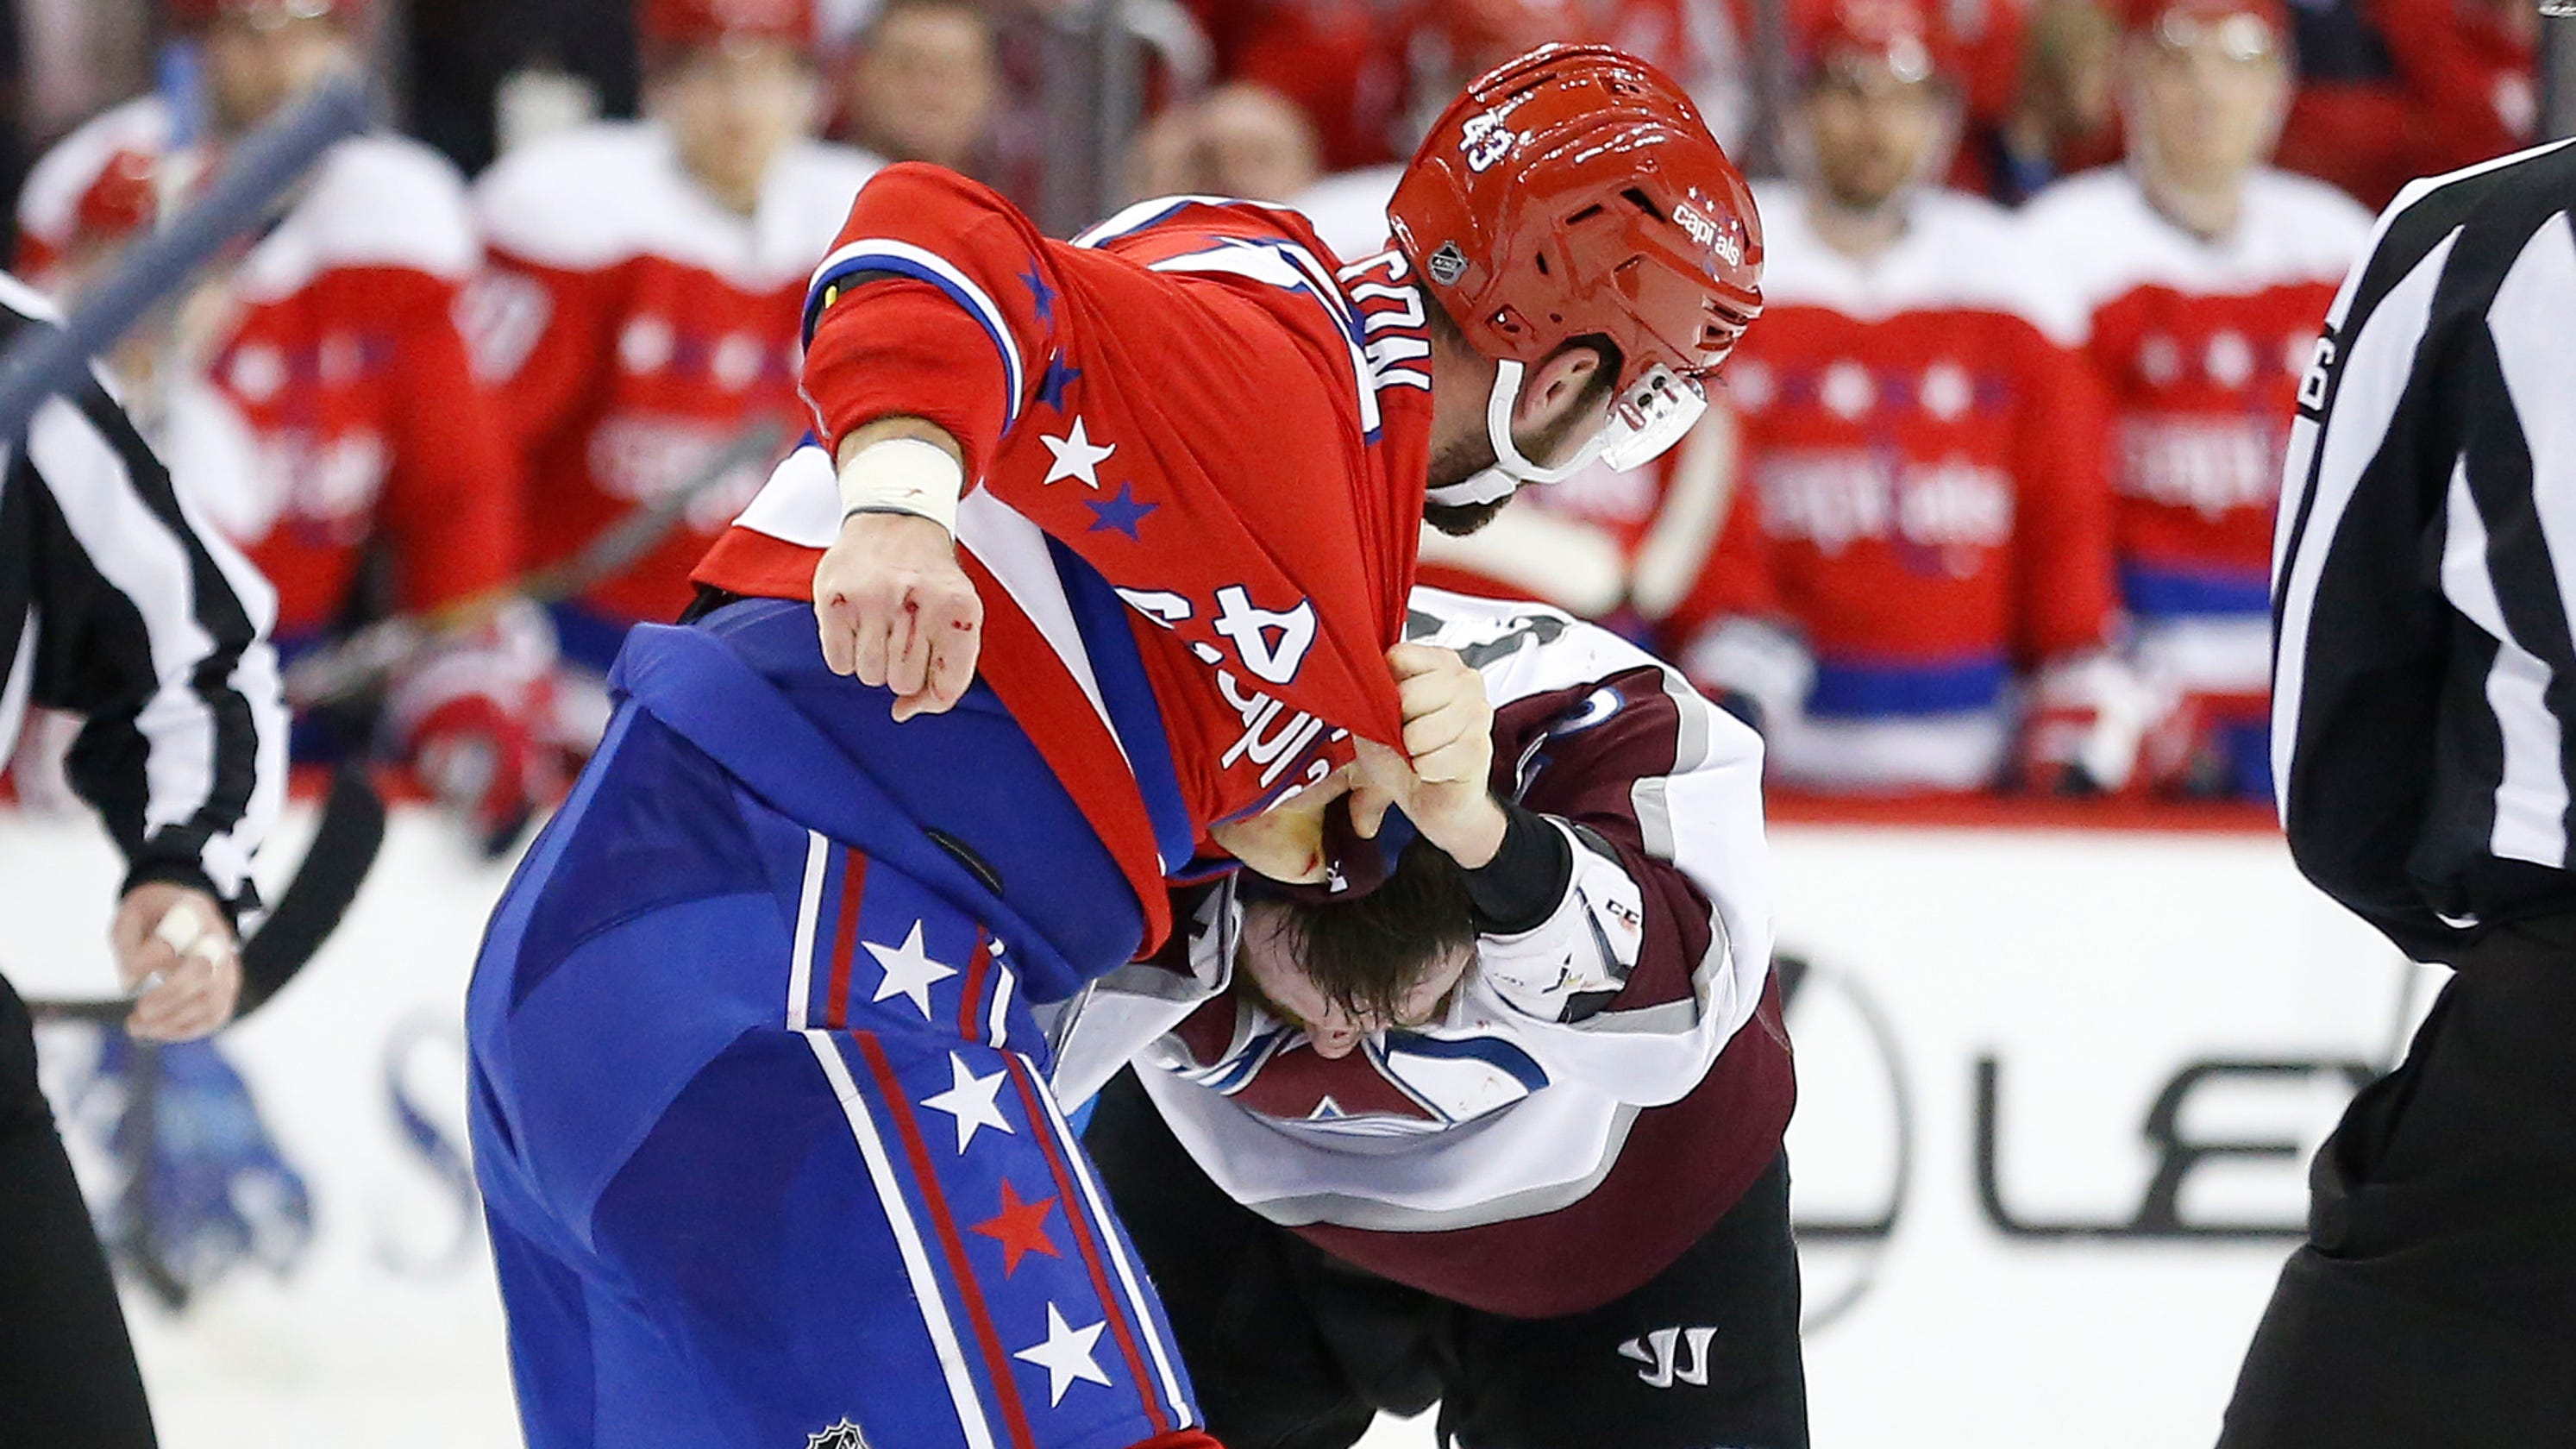 e2841f2d7 Capitals  Tom Wilson wrecks Avalanche player in fight after late hit